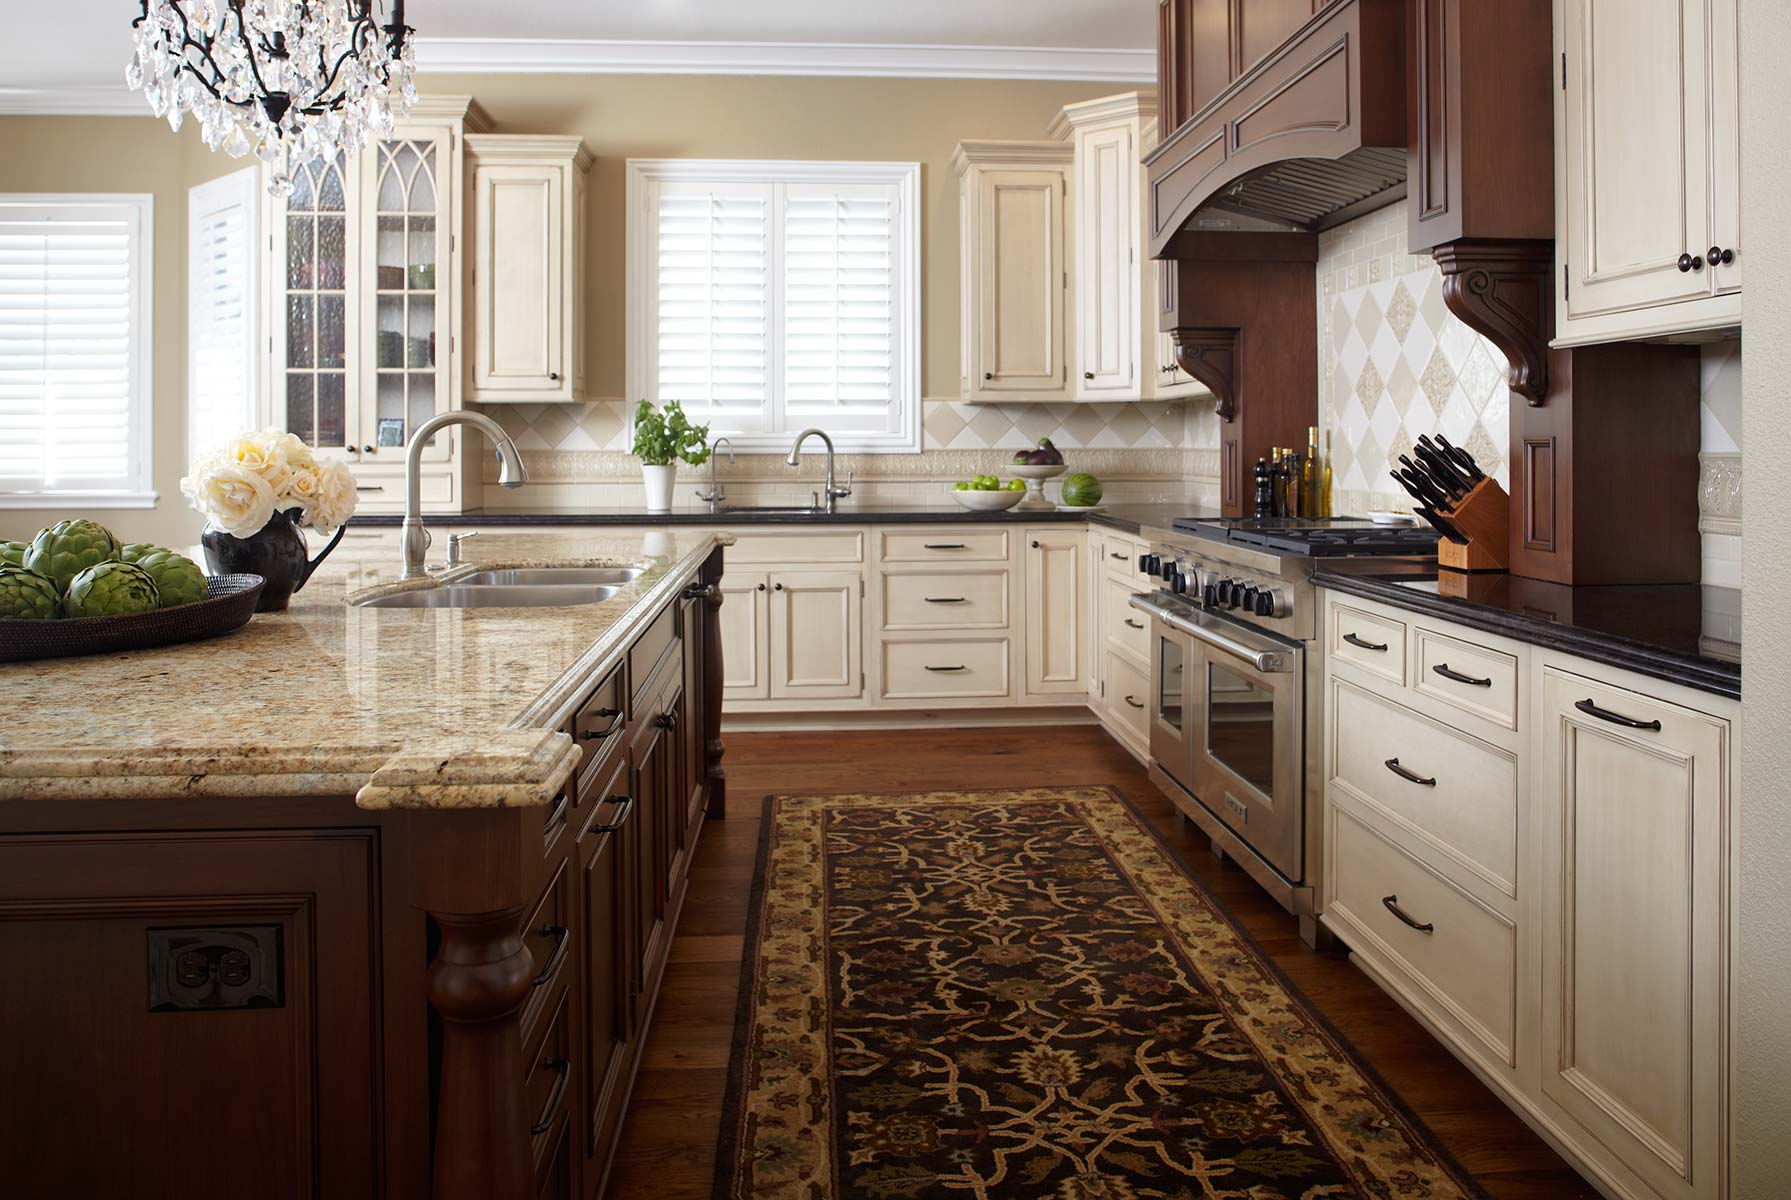 What type of tile is best for kitchen floor